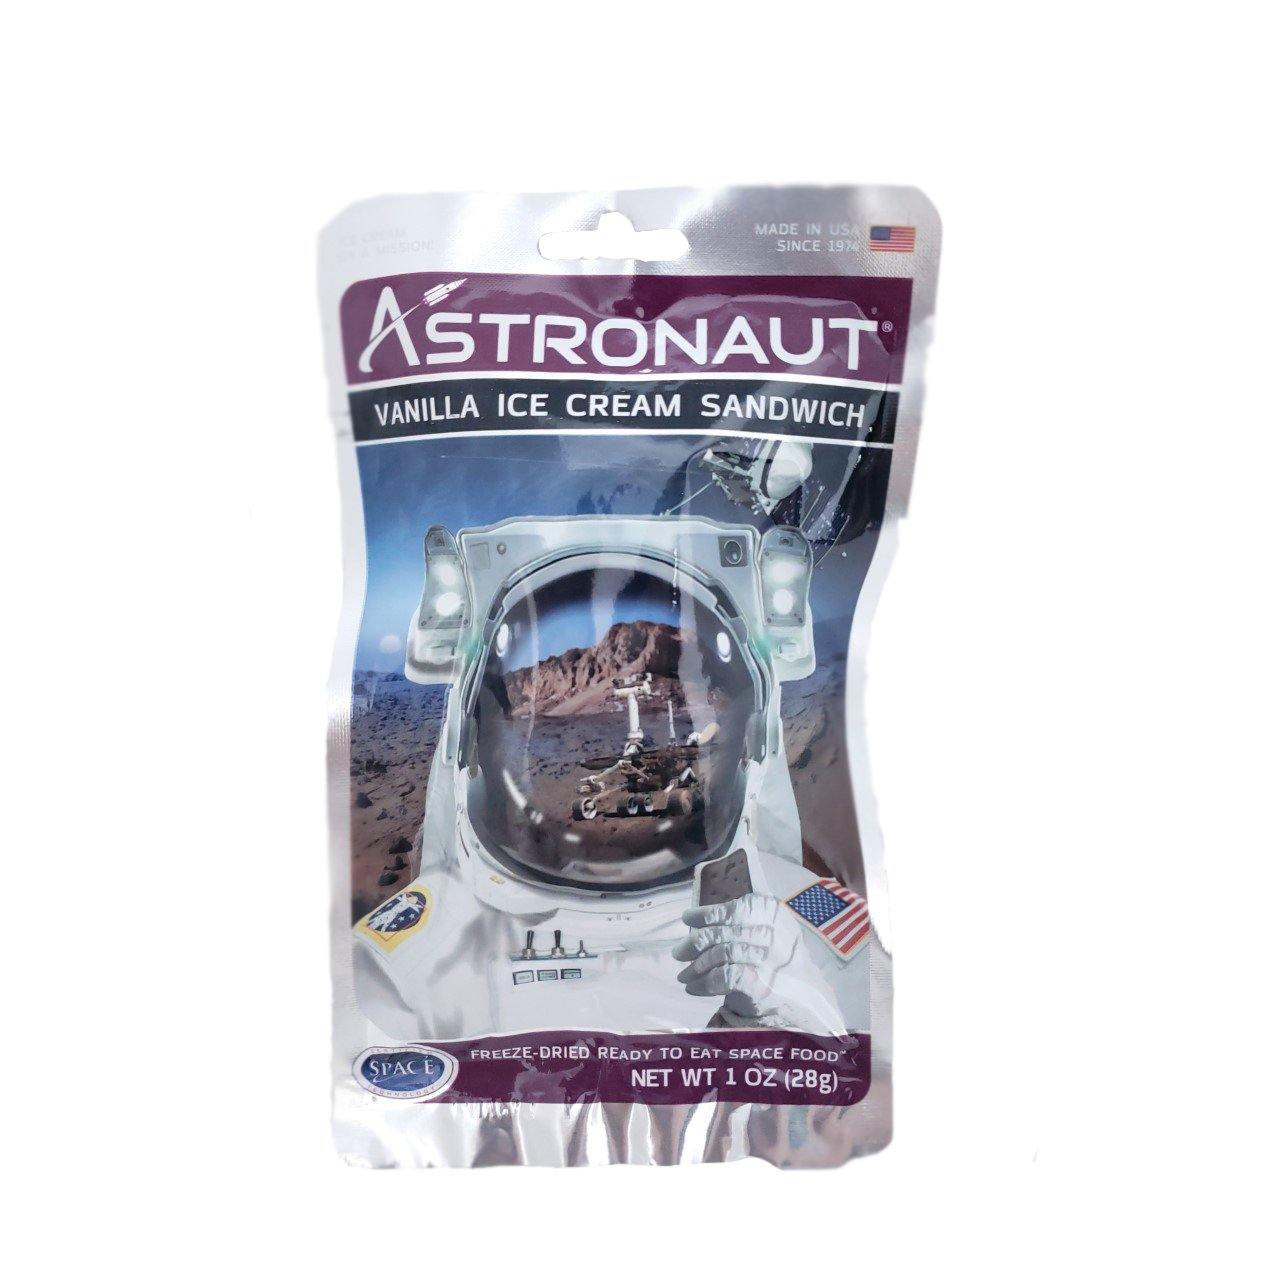 Astronaut Space Ice Cream Sandwich - Vanilla - Kitty Hawk Kites Online Store